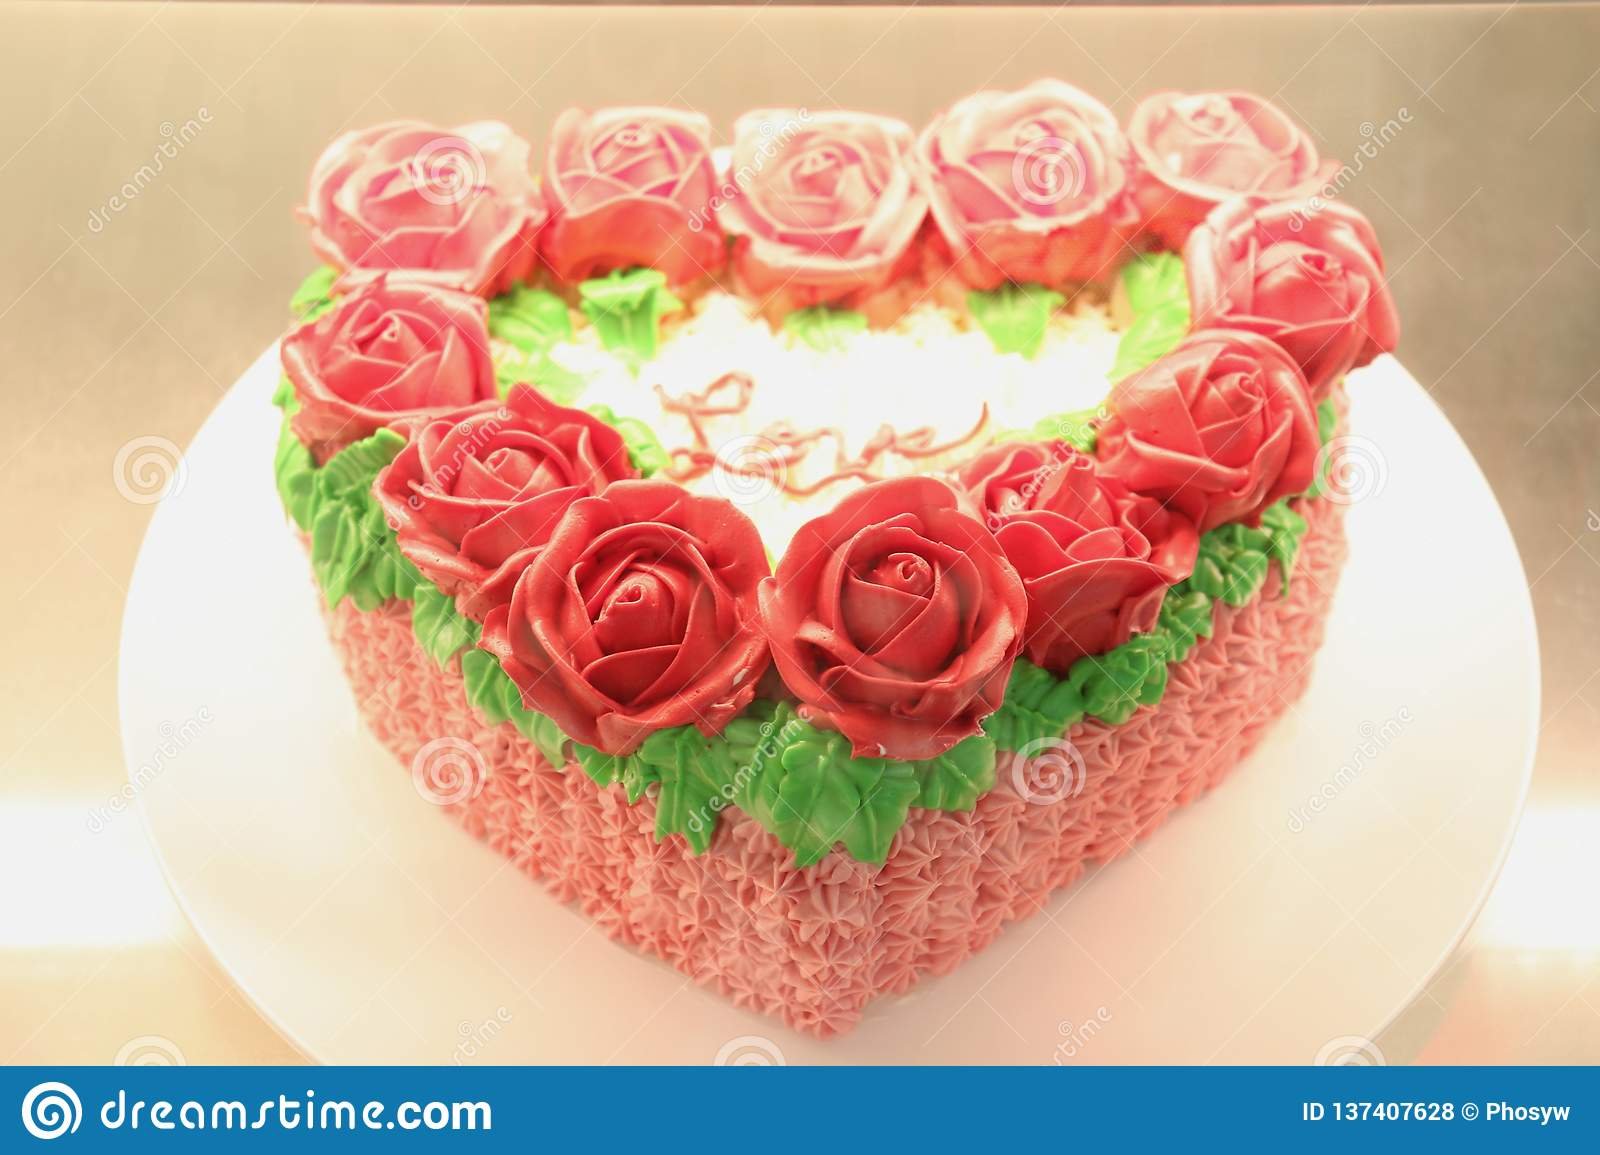 Heart Shaped Cake Decorated With Roses And Word Of Love On Top Stock